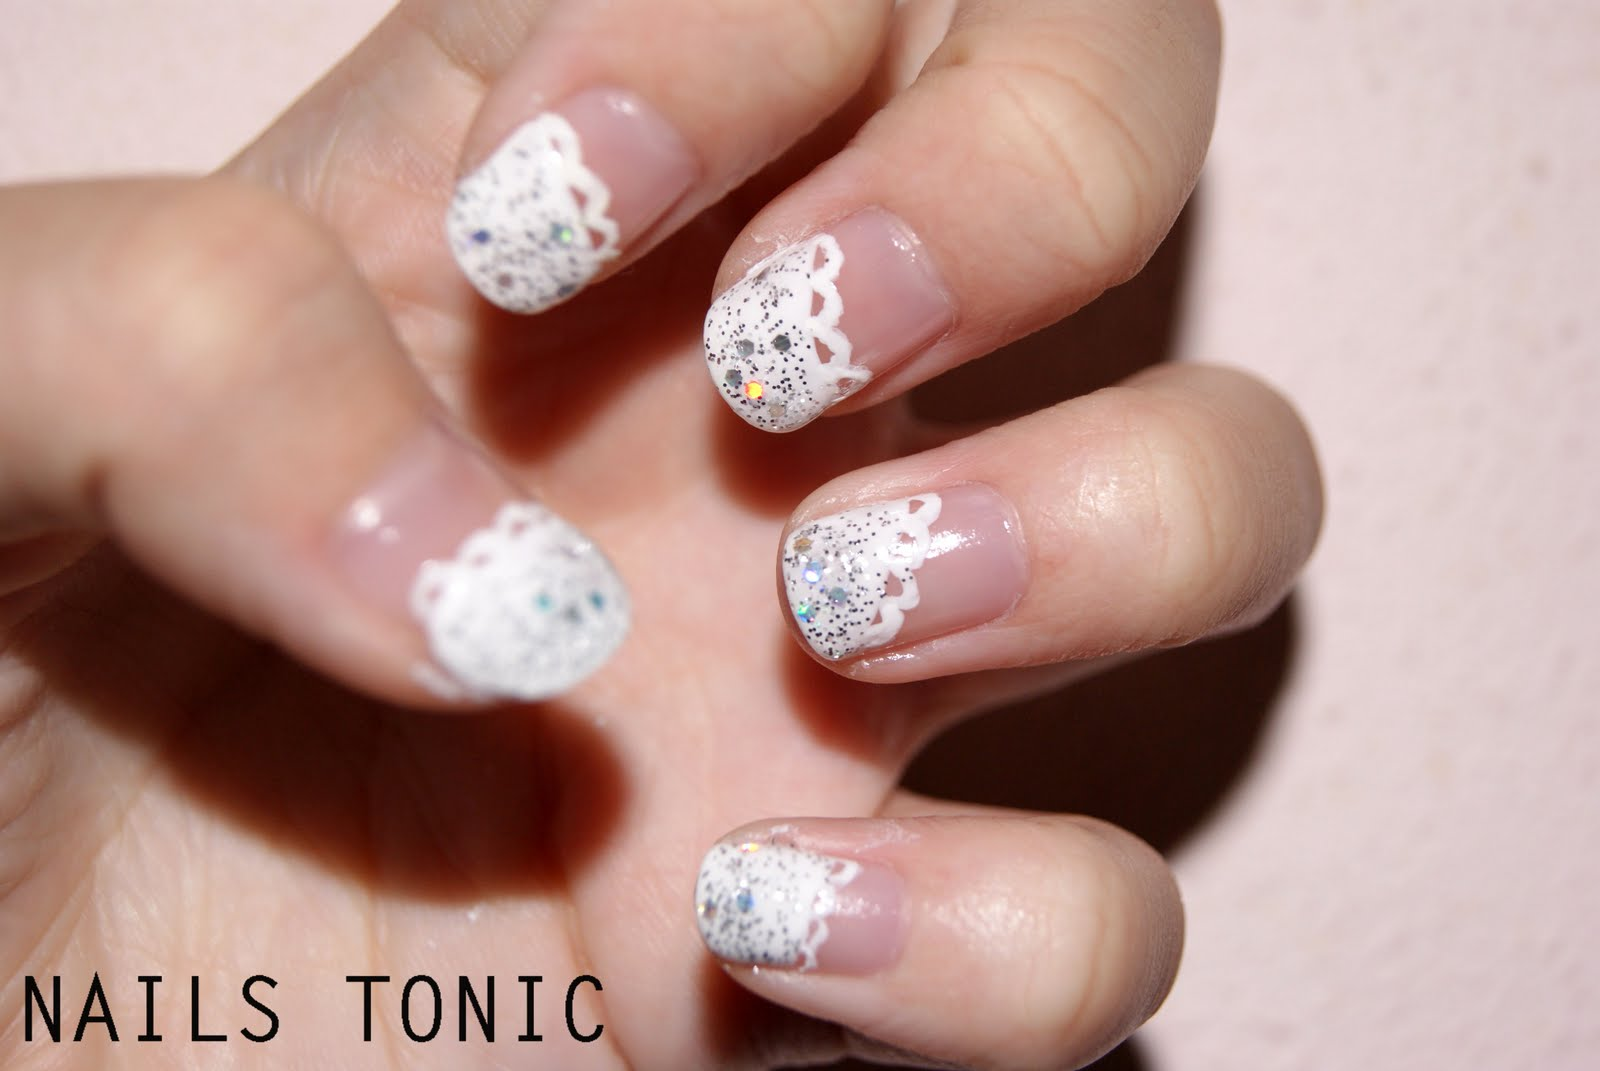 NAILS TONIC: White laced frenchtip nails